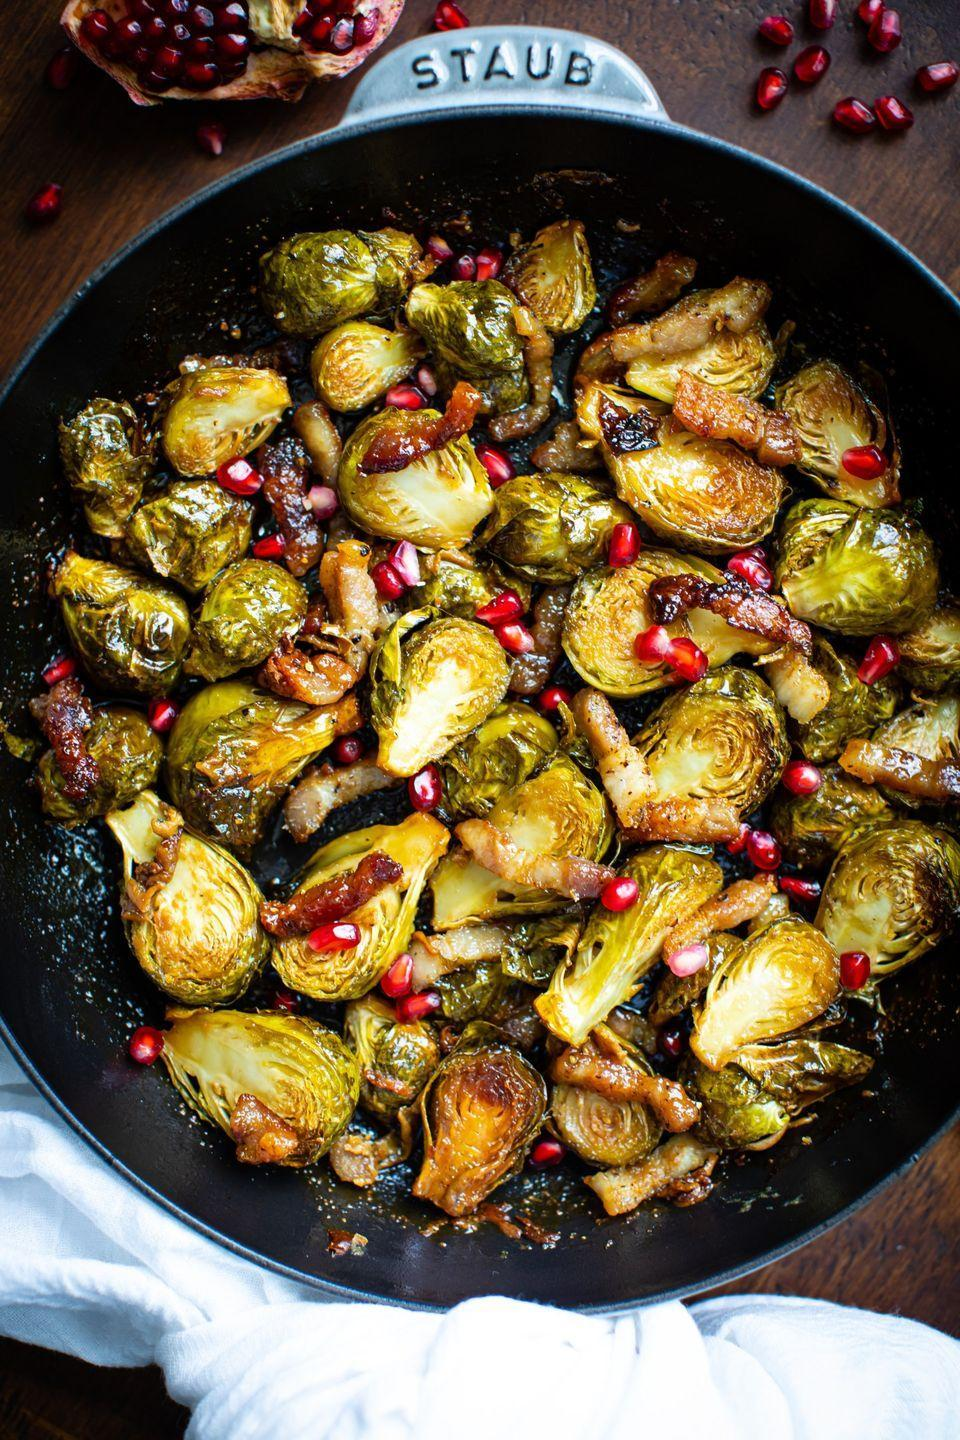 "<p>There are a ton of Brussels sprouts recipes out there, but this one is perfect to serve for such a hearty meal. It all boils down to two words: pork belly.</p><p><strong>Get the recipe at <a href=""https://www.butterbeready.com/maple-roasted-brussels-sprouts-with-pork-belly/"" rel=""nofollow noopener"" target=""_blank"" data-ylk=""slk:Butter Be Ready"" class=""link rapid-noclick-resp"">Butter Be Ready</a>.</strong></p><p><strong><a class=""link rapid-noclick-resp"" href=""https://go.redirectingat.com?id=74968X1596630&url=https%3A%2F%2Fwww.walmart.com%2Fbrowse%2Fhome%2Ftools-gadgets%2Fthe-pioneer-woman%2F4044_623679_133020%2FYnJhbmQ6VGhlIFBpb25lZXIgV29tYW4ie&sref=https%3A%2F%2Fwww.thepioneerwoman.com%2Ffood-cooking%2Fmeals-menus%2Fg33251890%2Fbest-thanksgiving-sides%2F"" rel=""nofollow noopener"" target=""_blank"" data-ylk=""slk:SHOP KITCHEN TOOLS"">SHOP KITCHEN TOOLS</a></strong></p>"